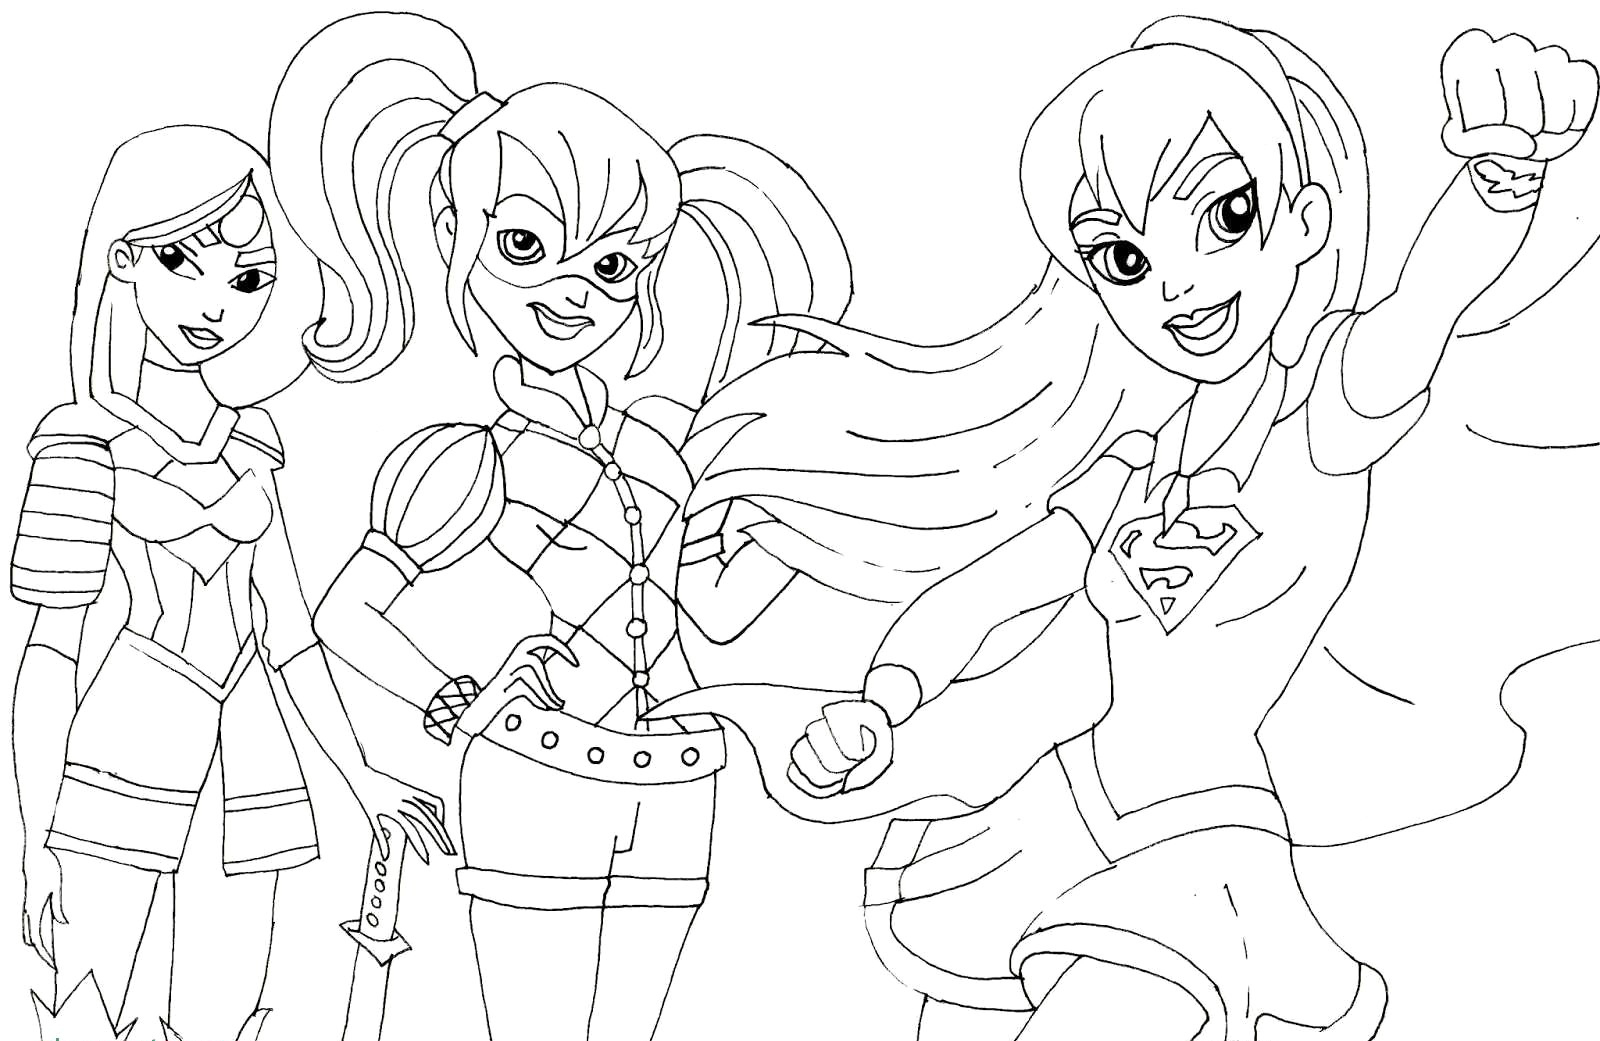 Dc Superhero Girls Coloring Pages Best Coloring Pages For Kids